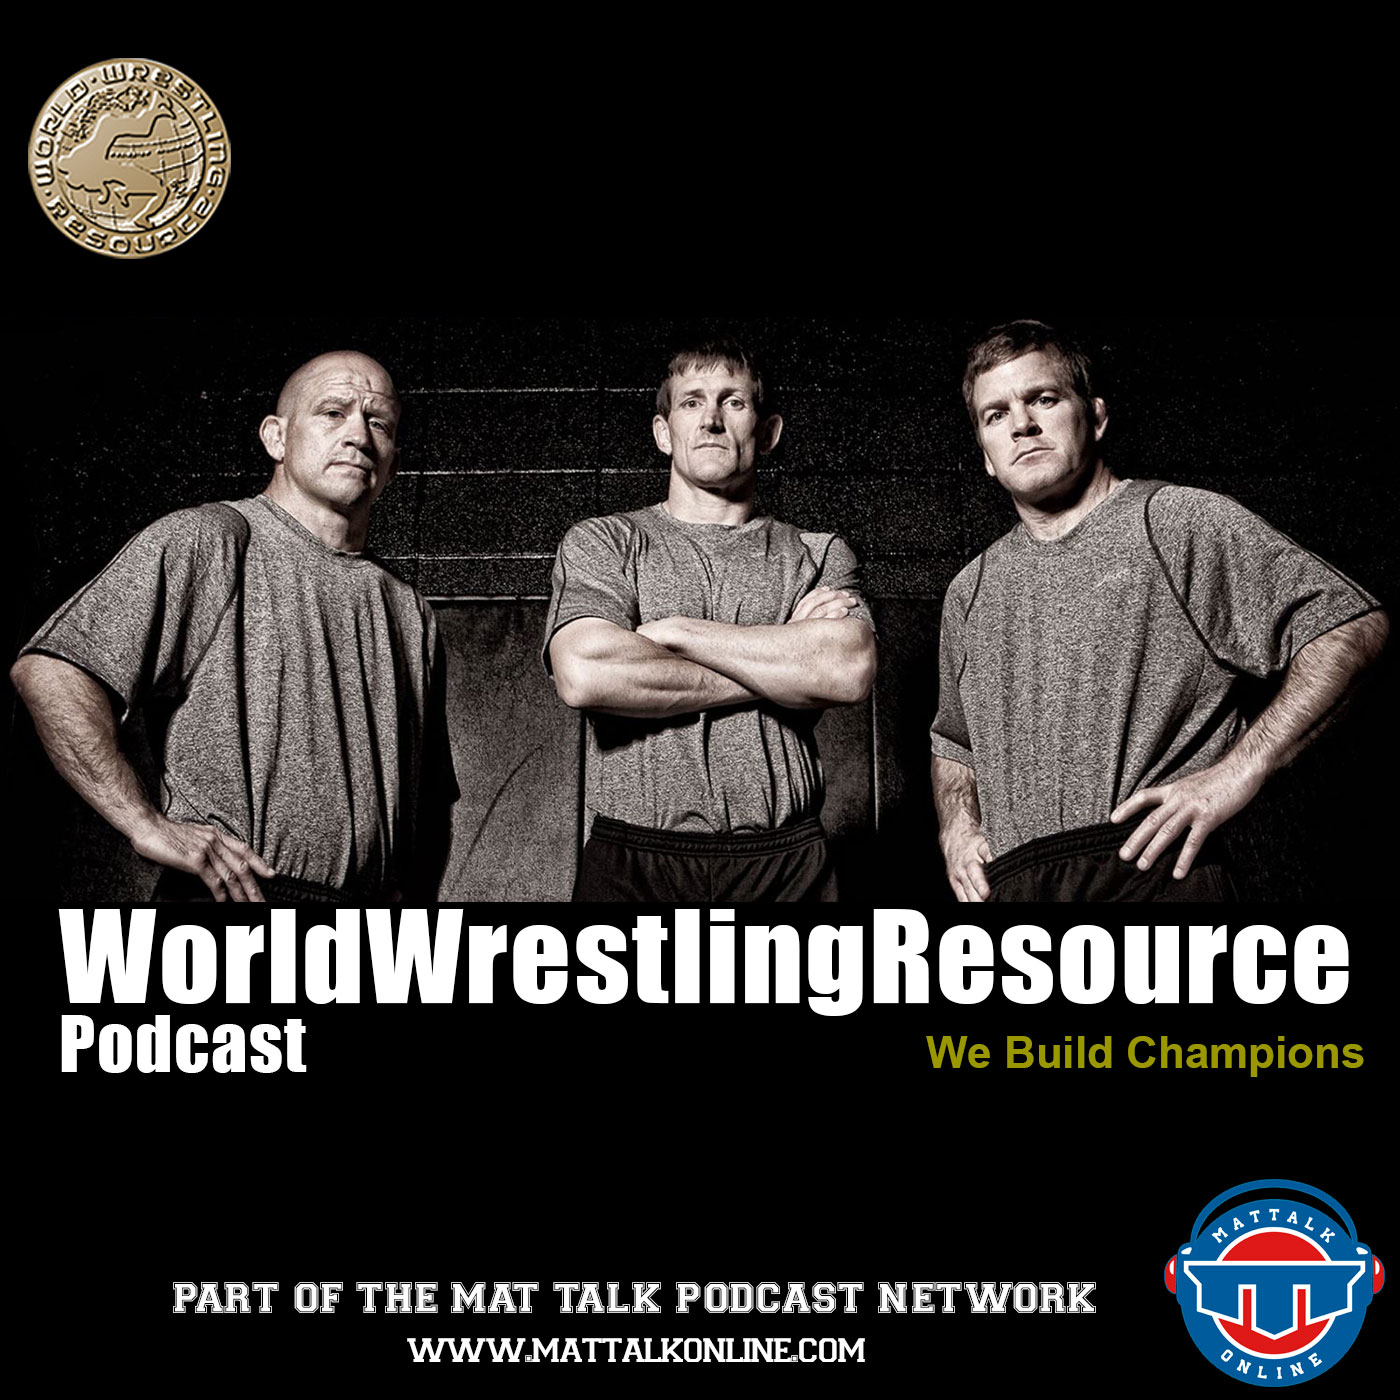 Artwork for WWR16: Olympic champion Ben Peterson and Wrestling Mindset's Gene Zannetti discuss mental training and mindset preparation